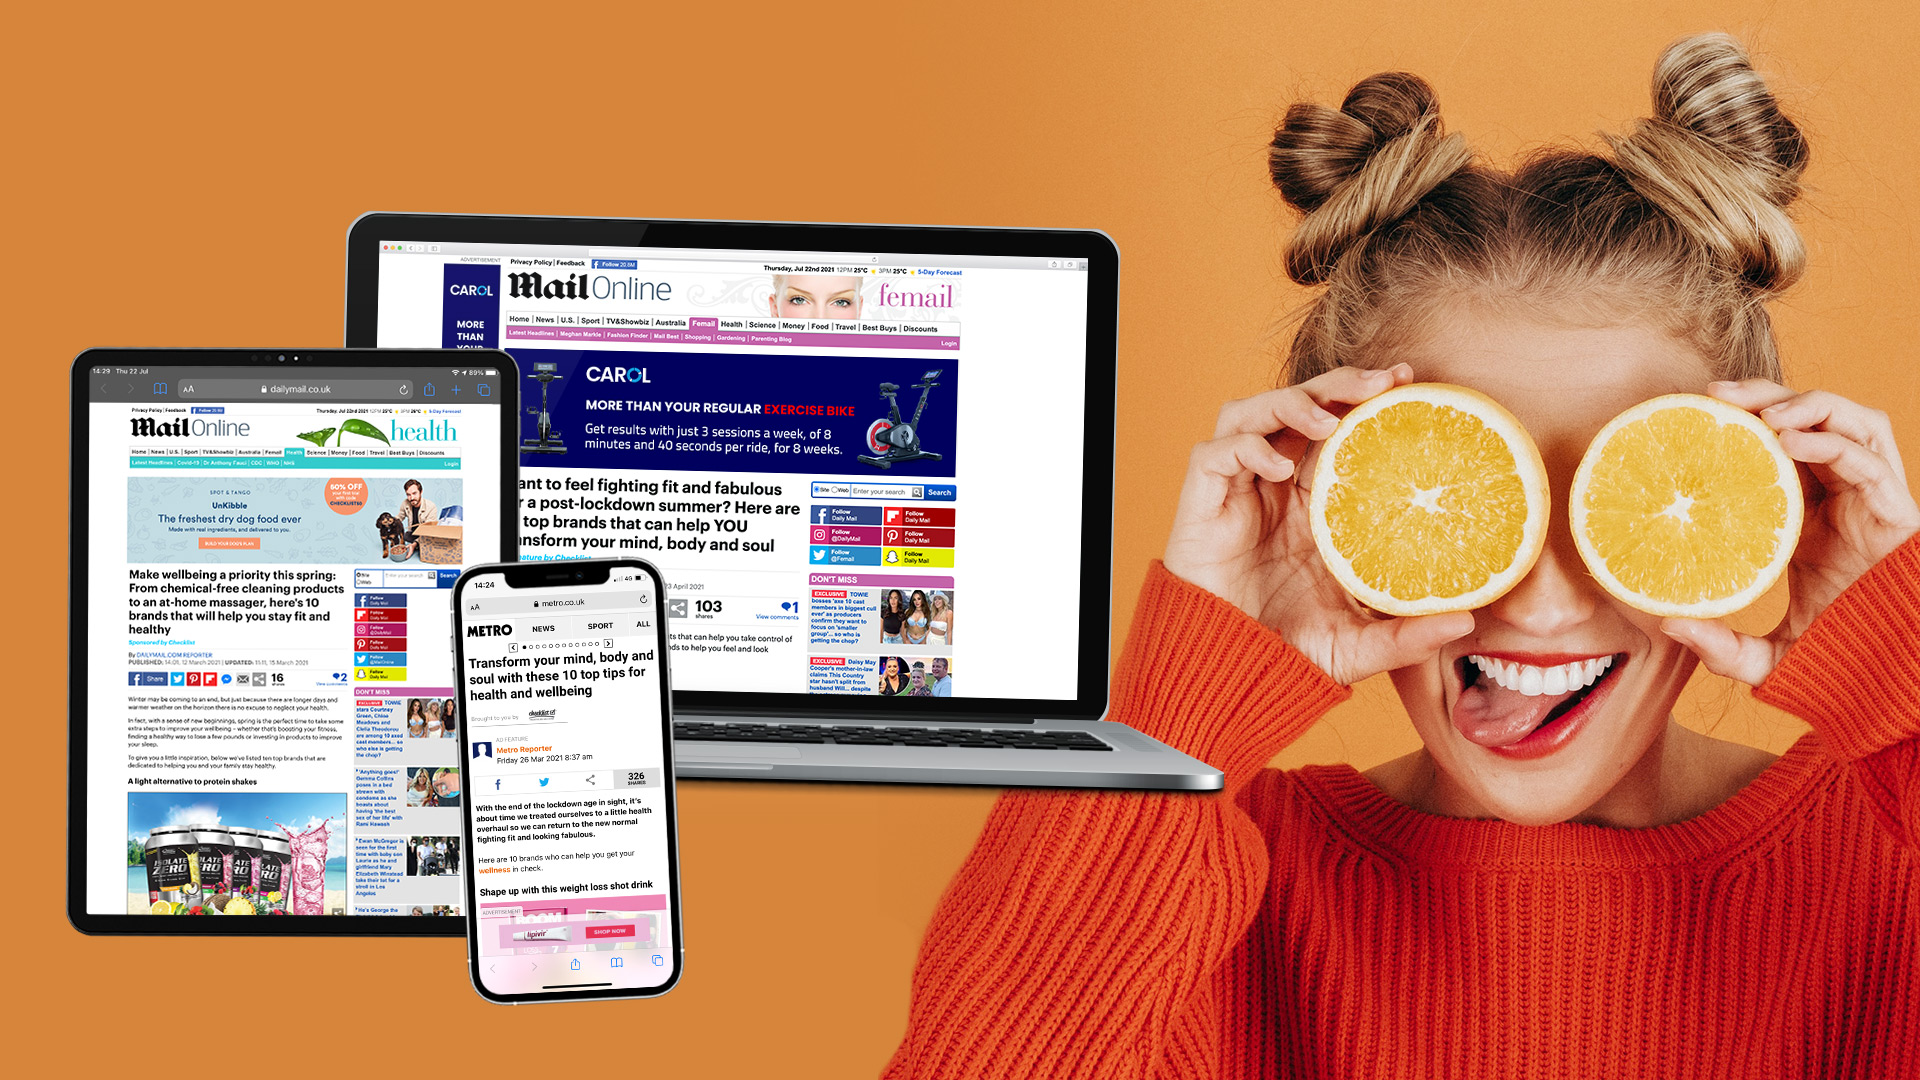 Spring Health & Wellbeing Inspiration in DailyMail.com